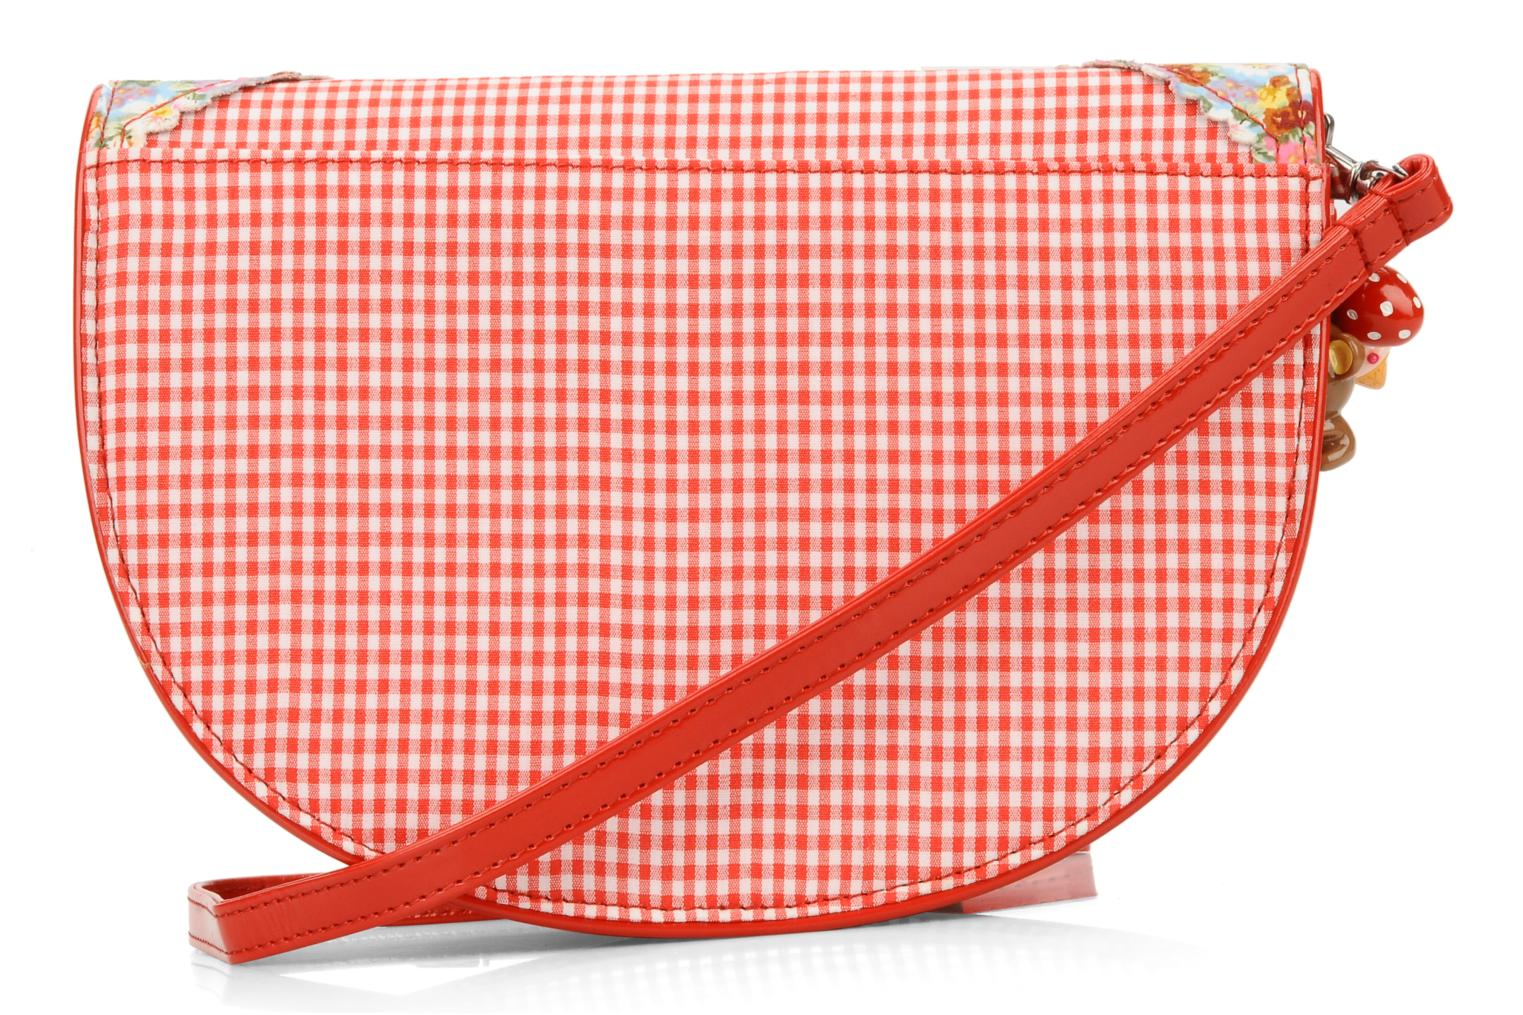 Lola cross body Red